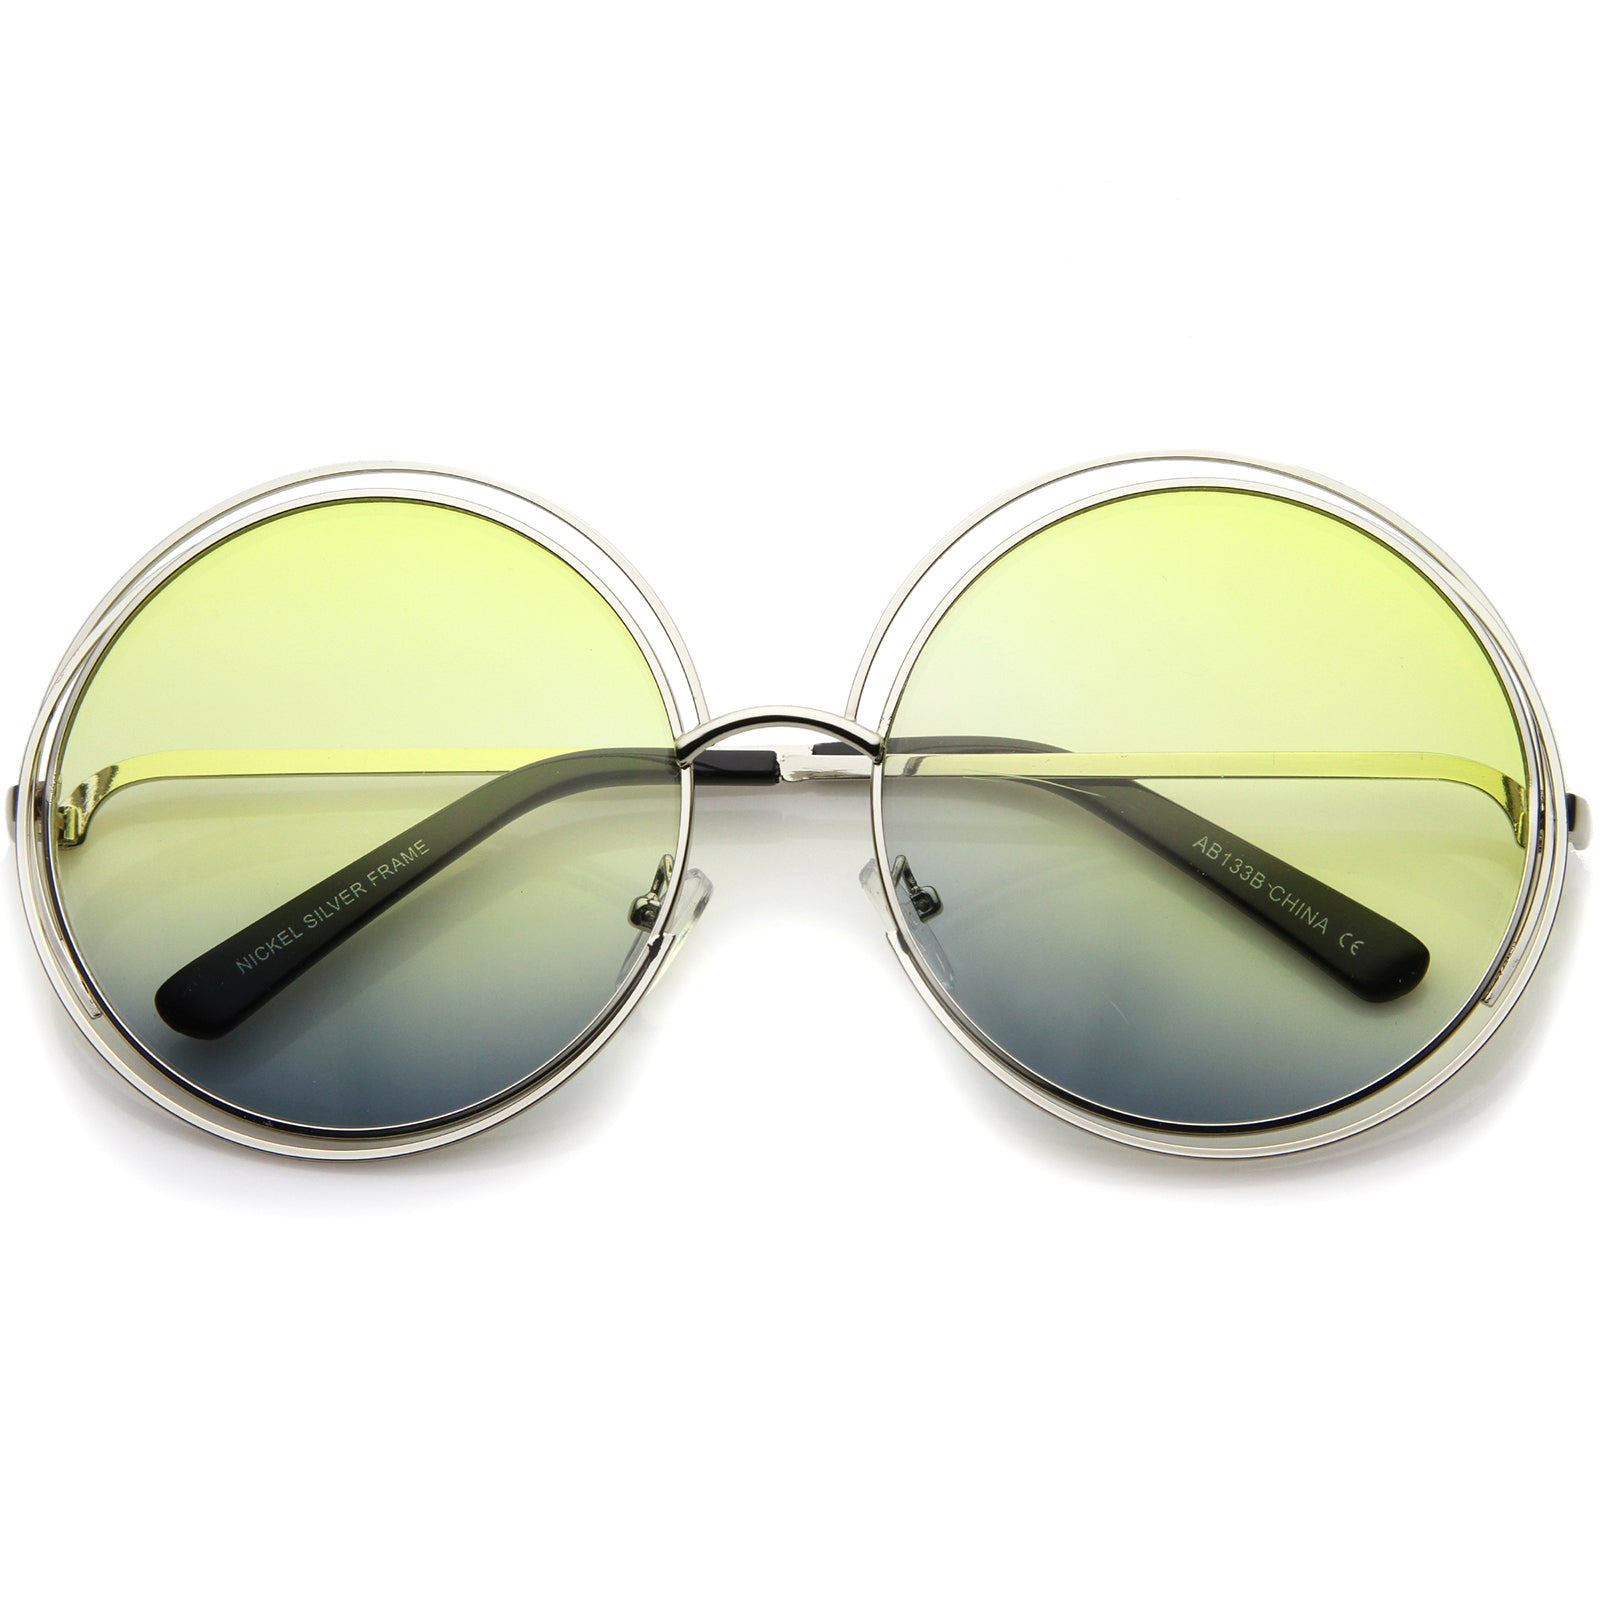 Oversize Wire Frame Gradient Two-Tone Color Lens Round Sunglasses 61mm - sunglass.la - 13